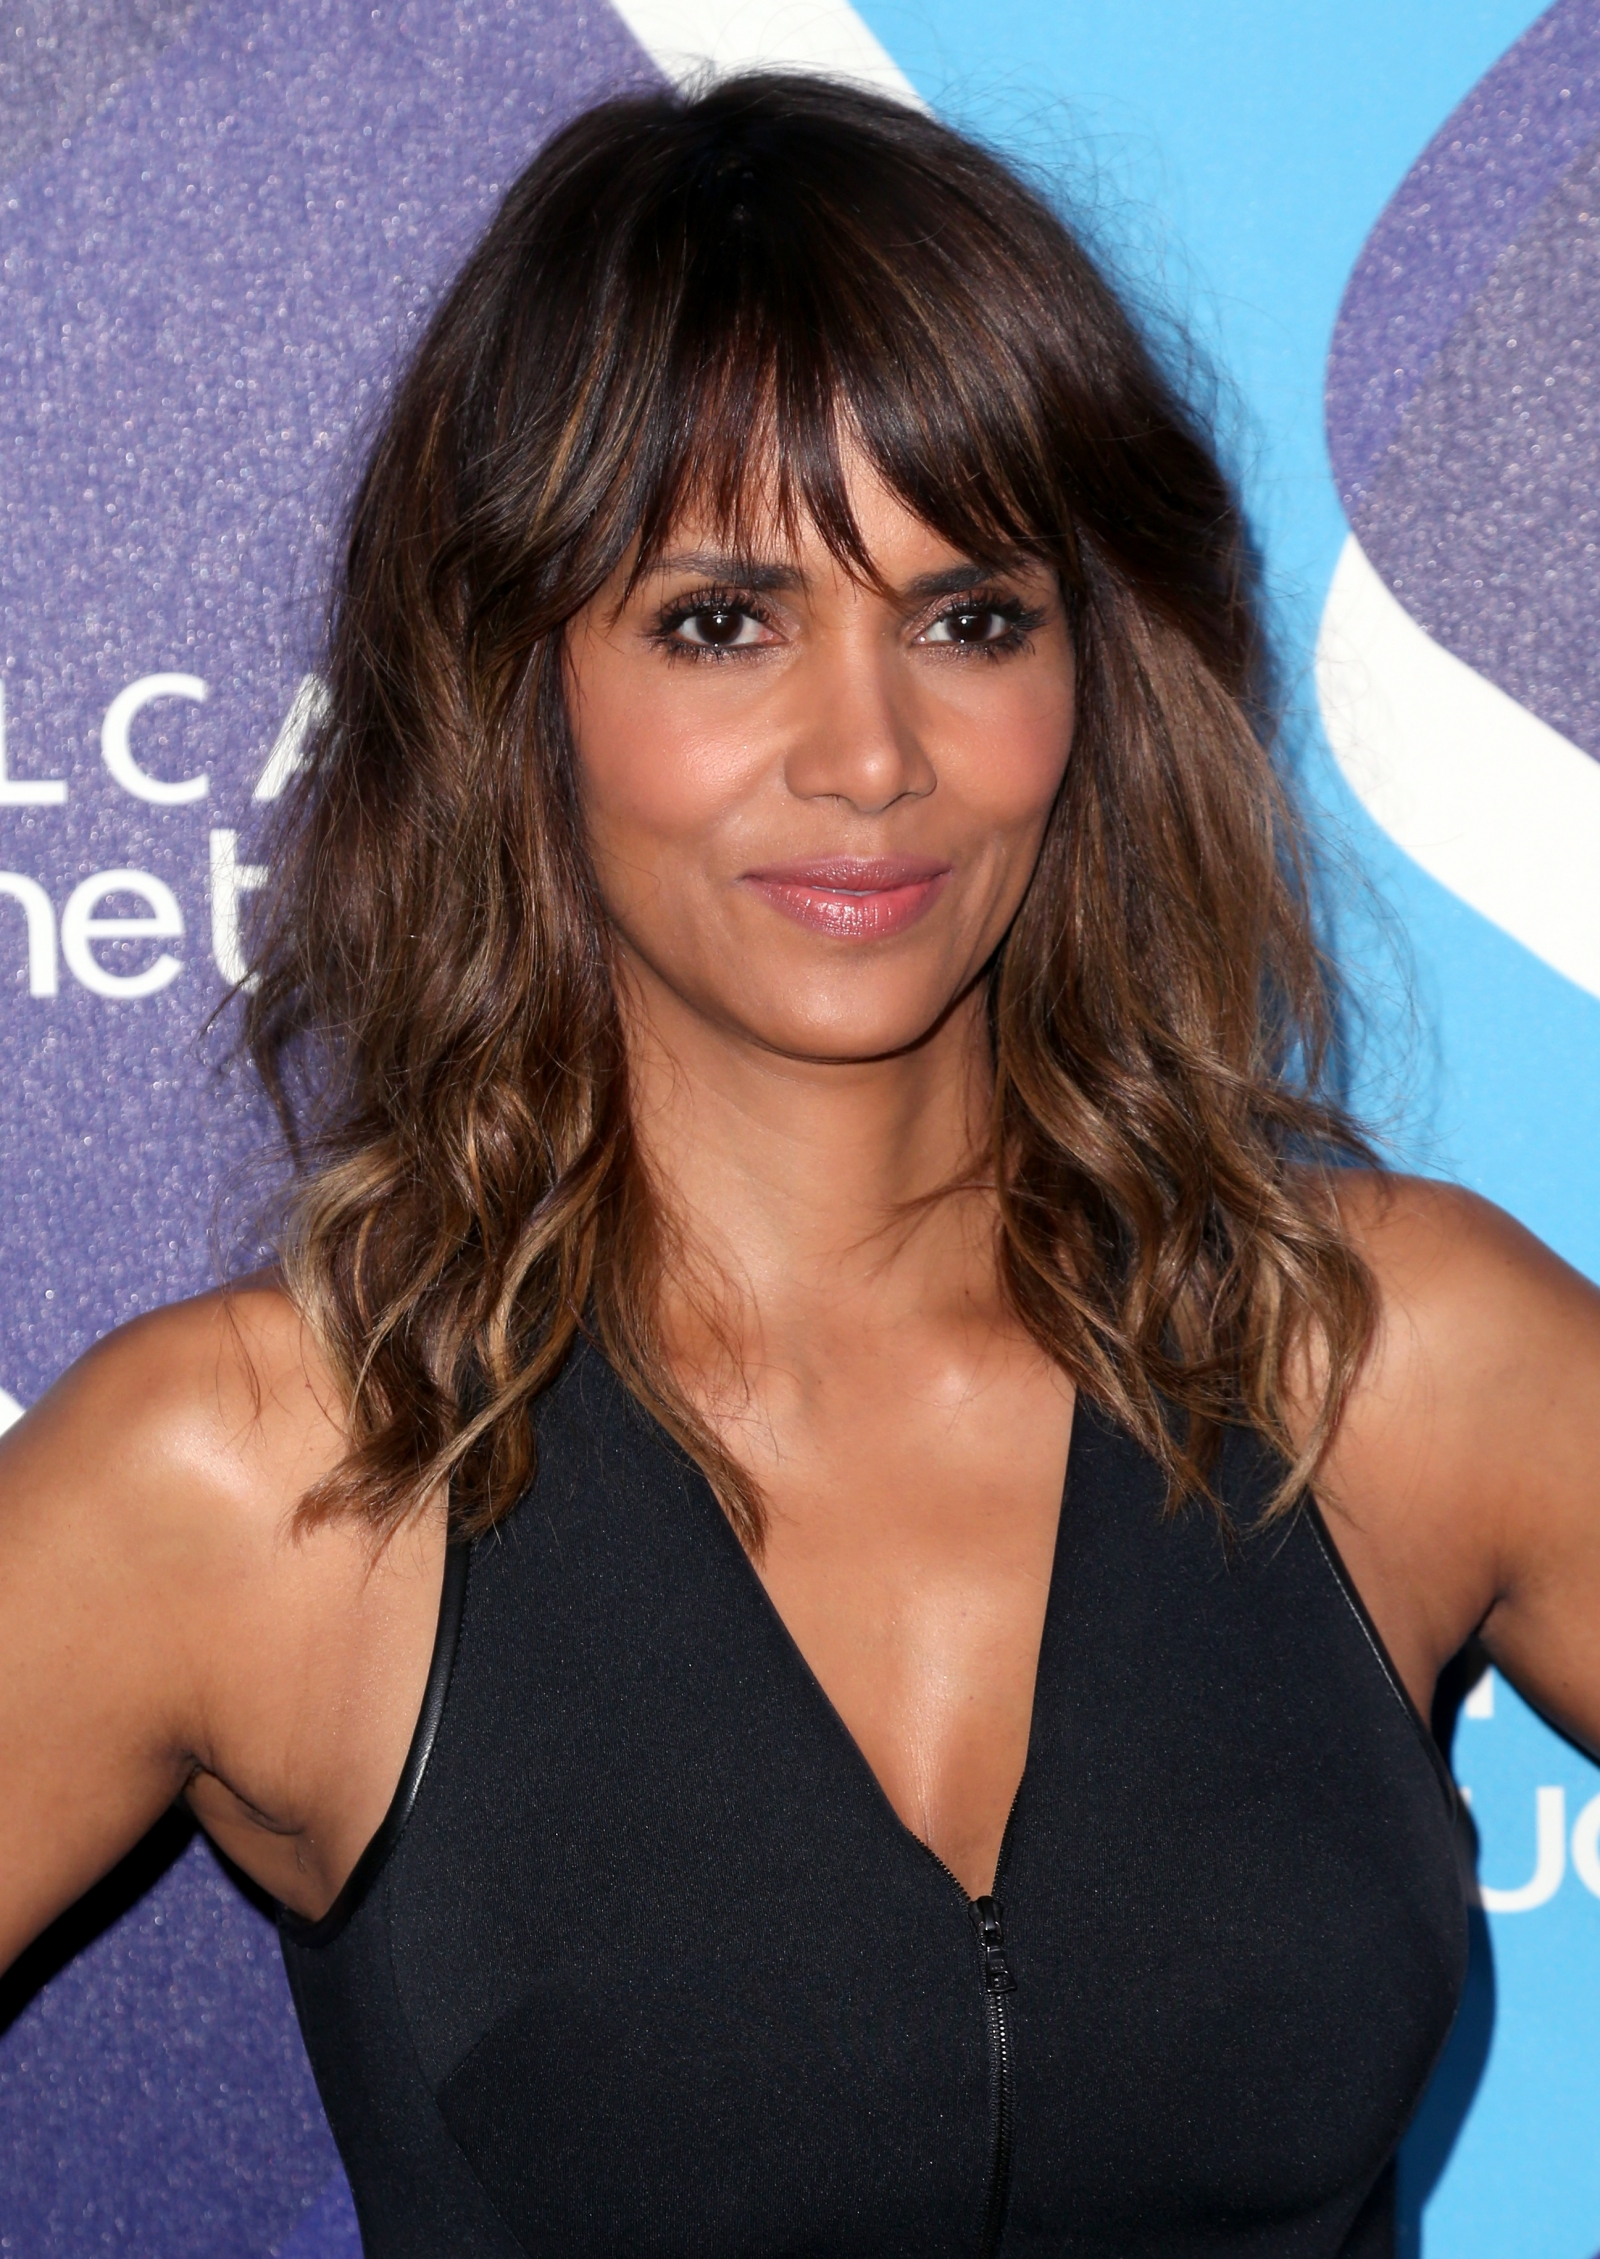 Halle Berry Compares Plastic Surgery To Crack Cocaine